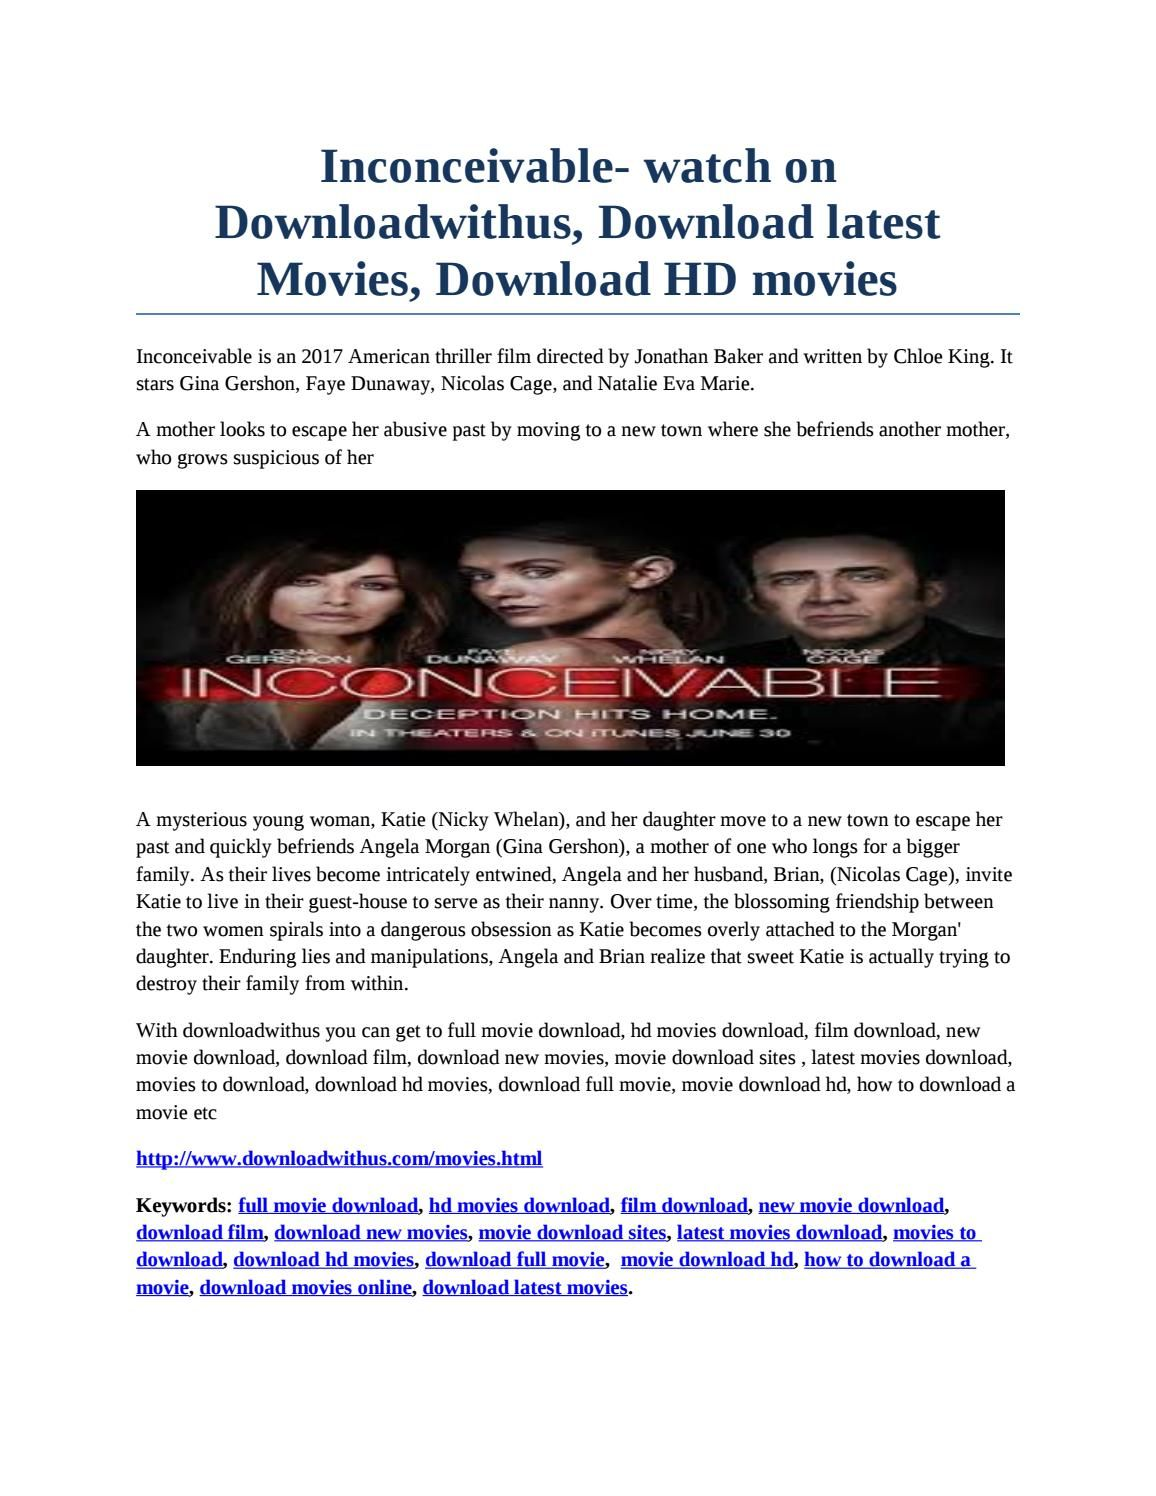 inconceivable- watch on downloadwithus, download latest movies